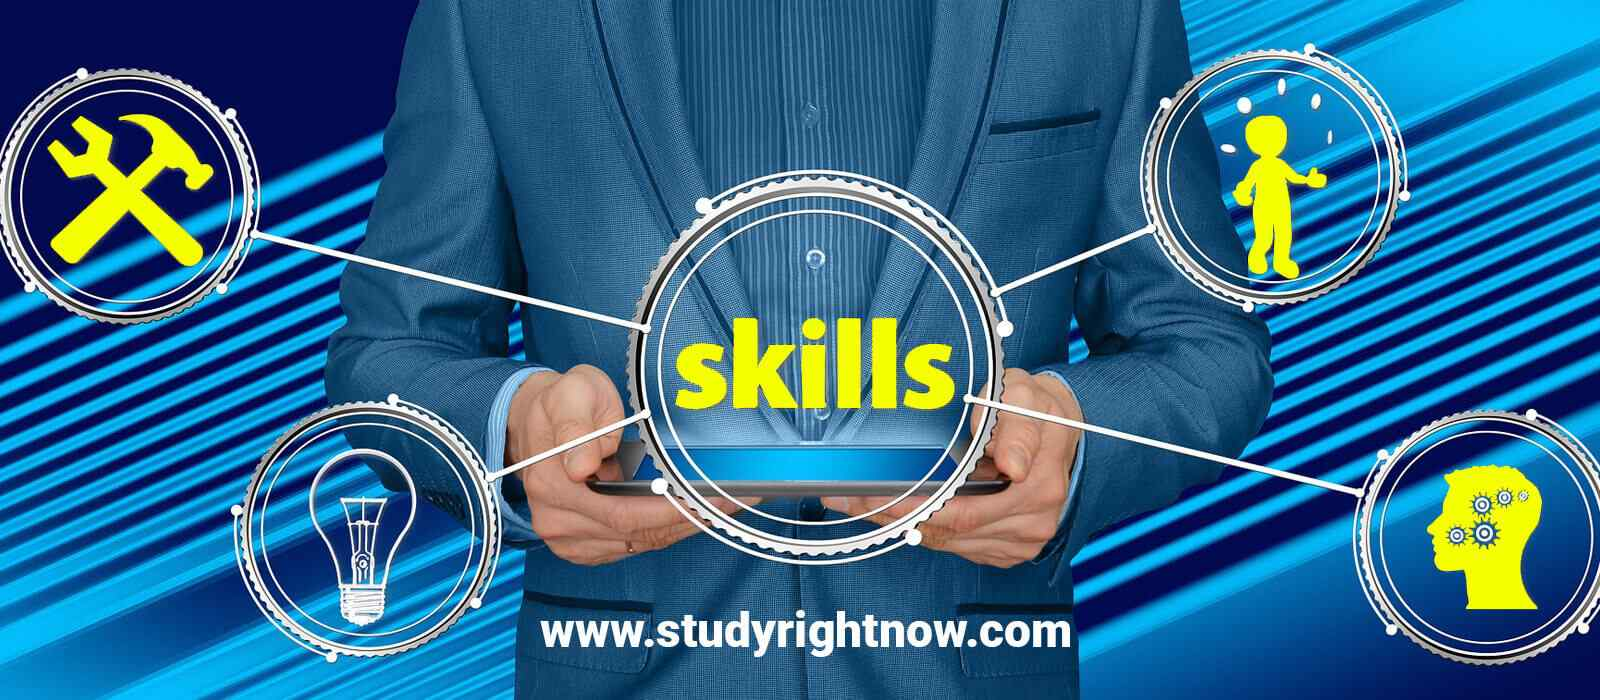 Studyrightnow is providing the best online tutorials for programming languages.